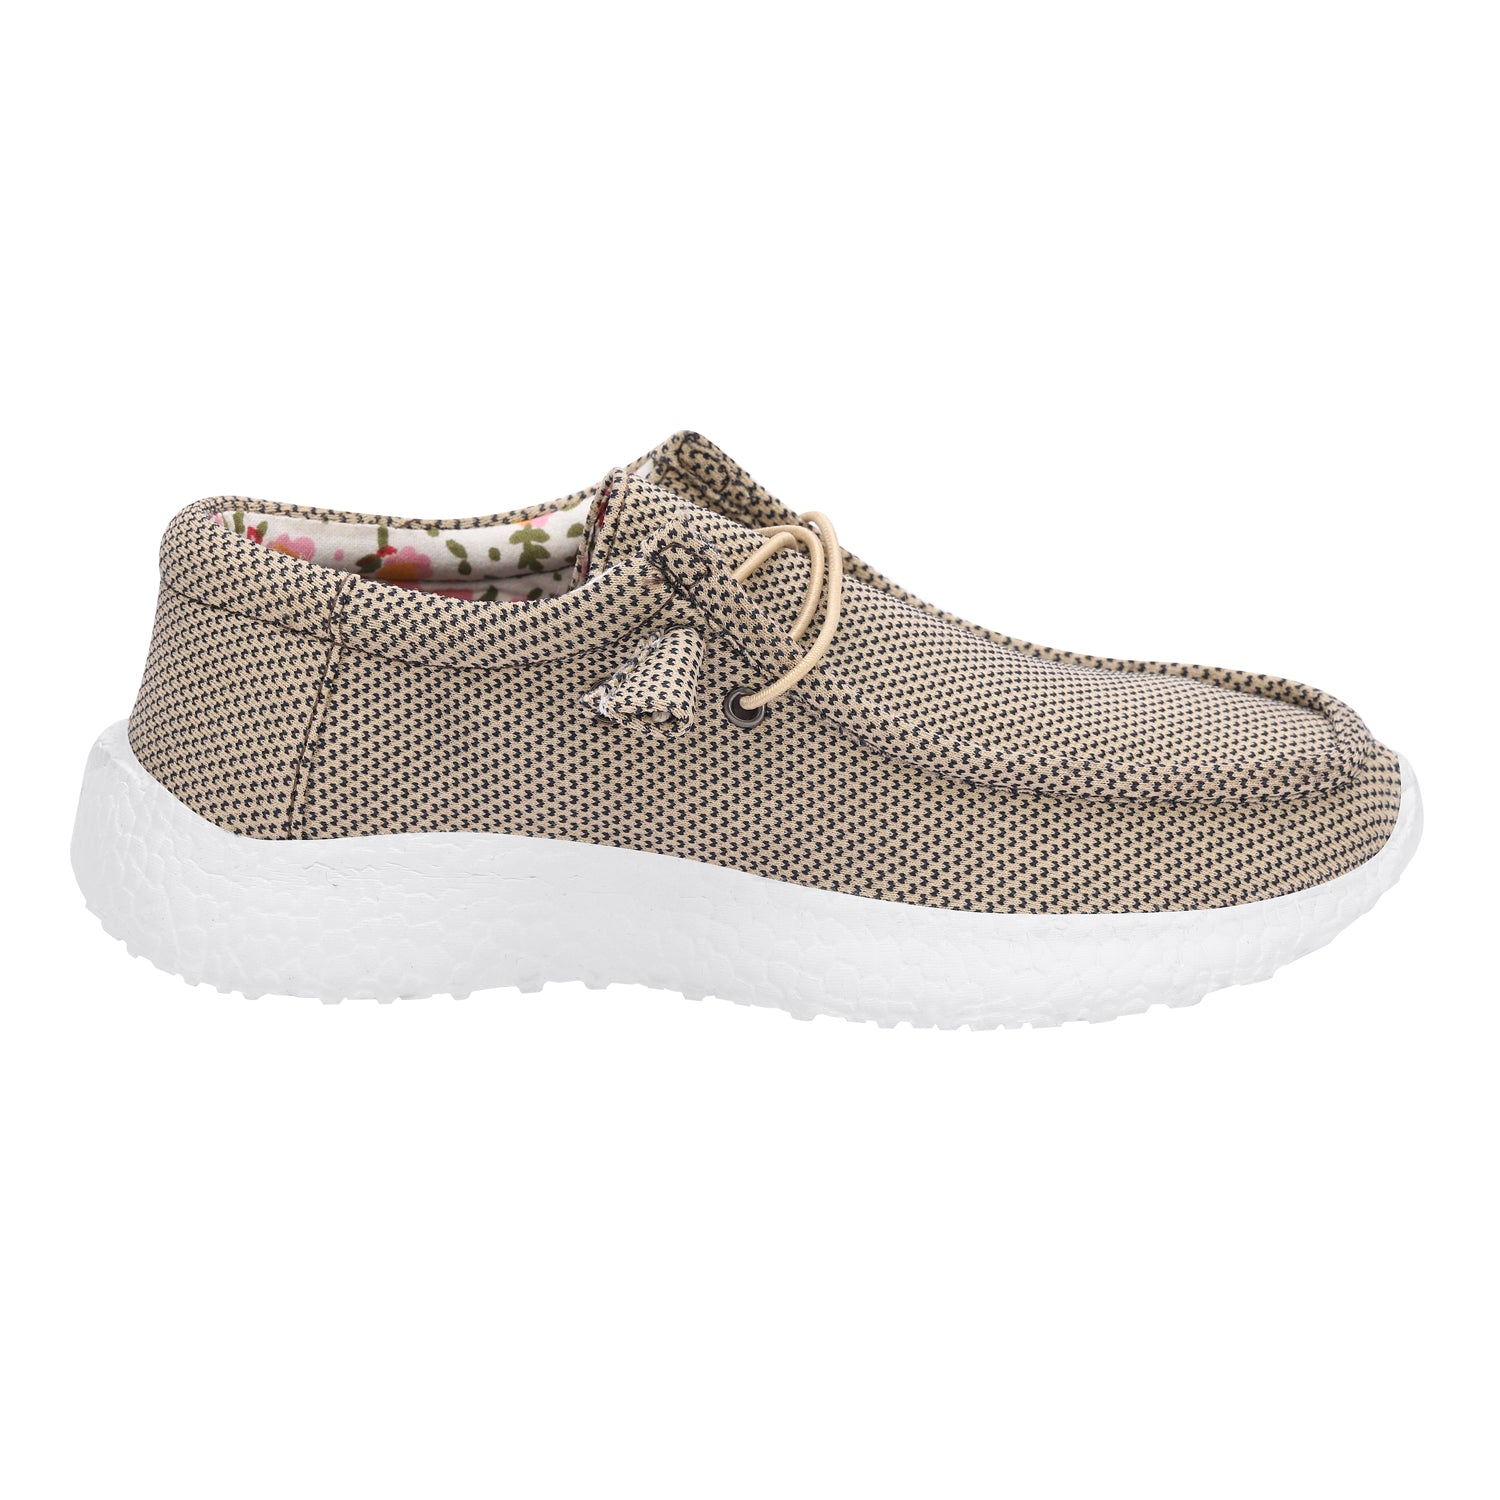 Children's Rodeo Knit Shoes - TuffRider - Breeches.com